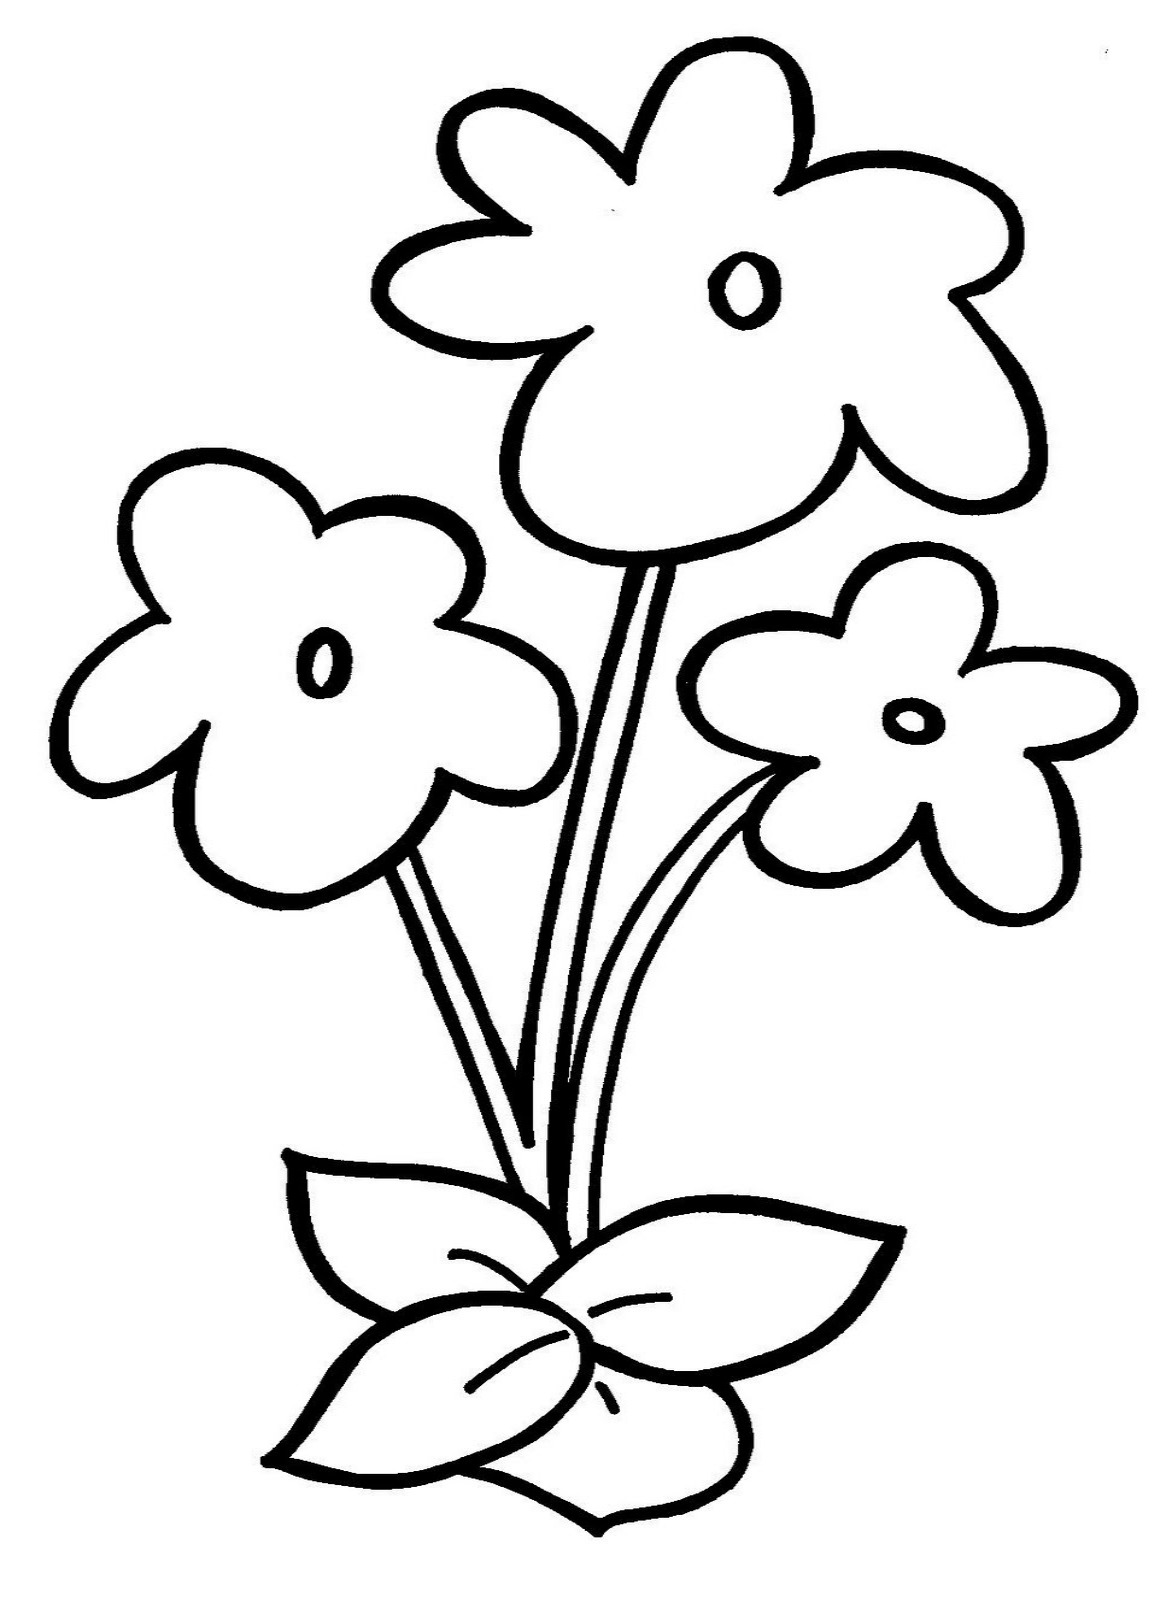 flower coloring page free printable flower coloring pages for kids best coloring flower page